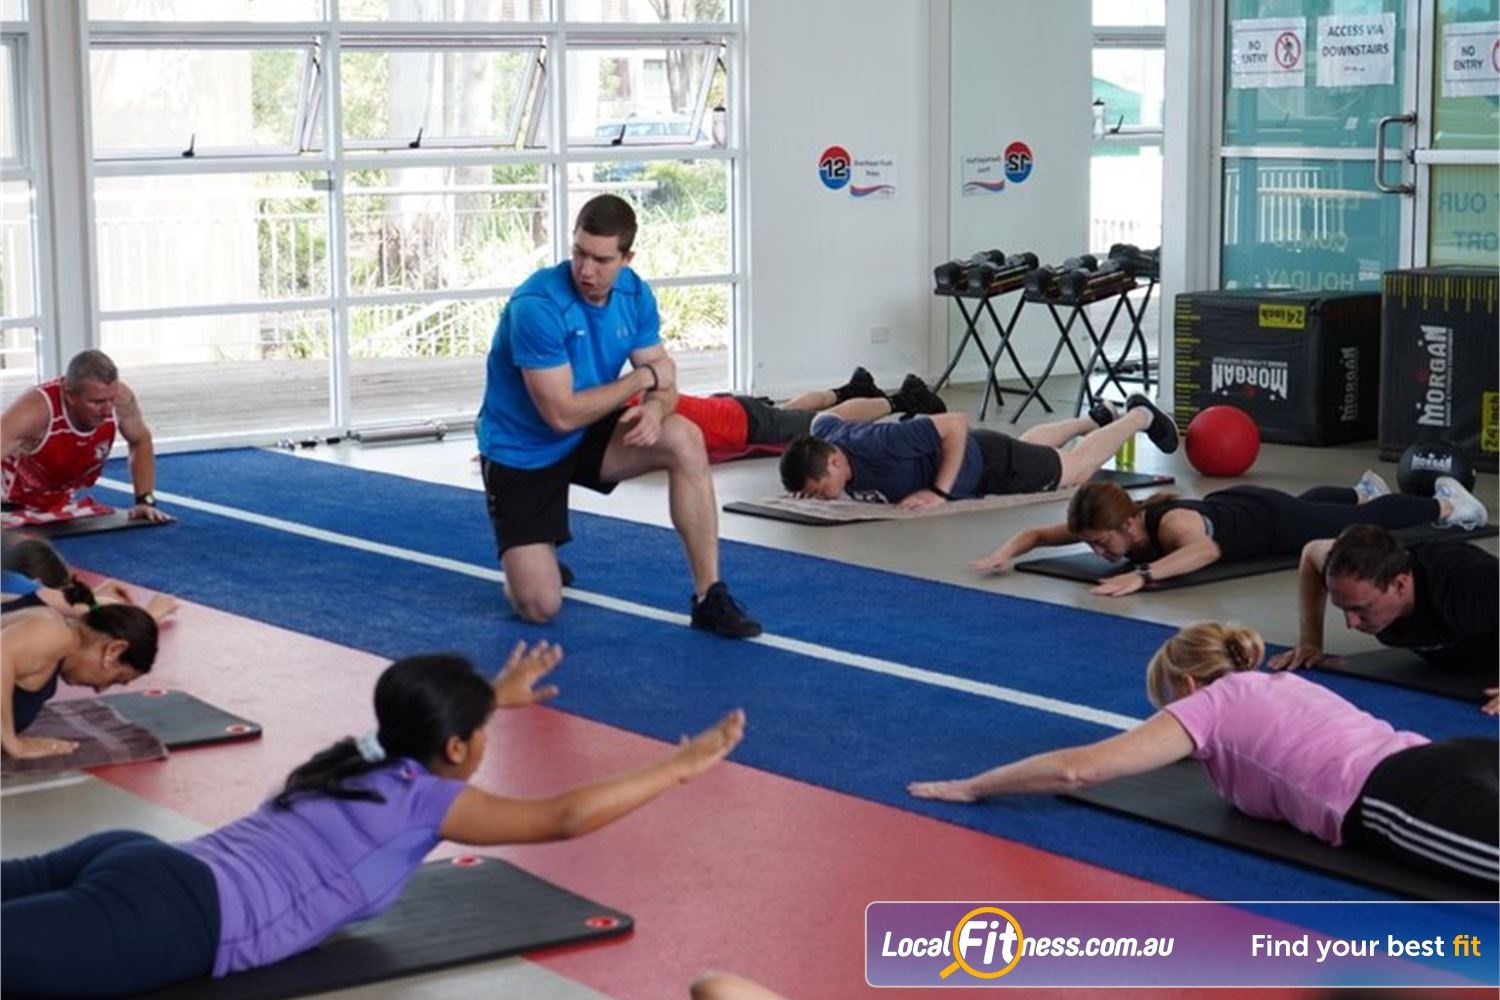 North Ryde Fitness & Aquatic North Ryde Join the family at North Ryde Fitness + Aquatic.